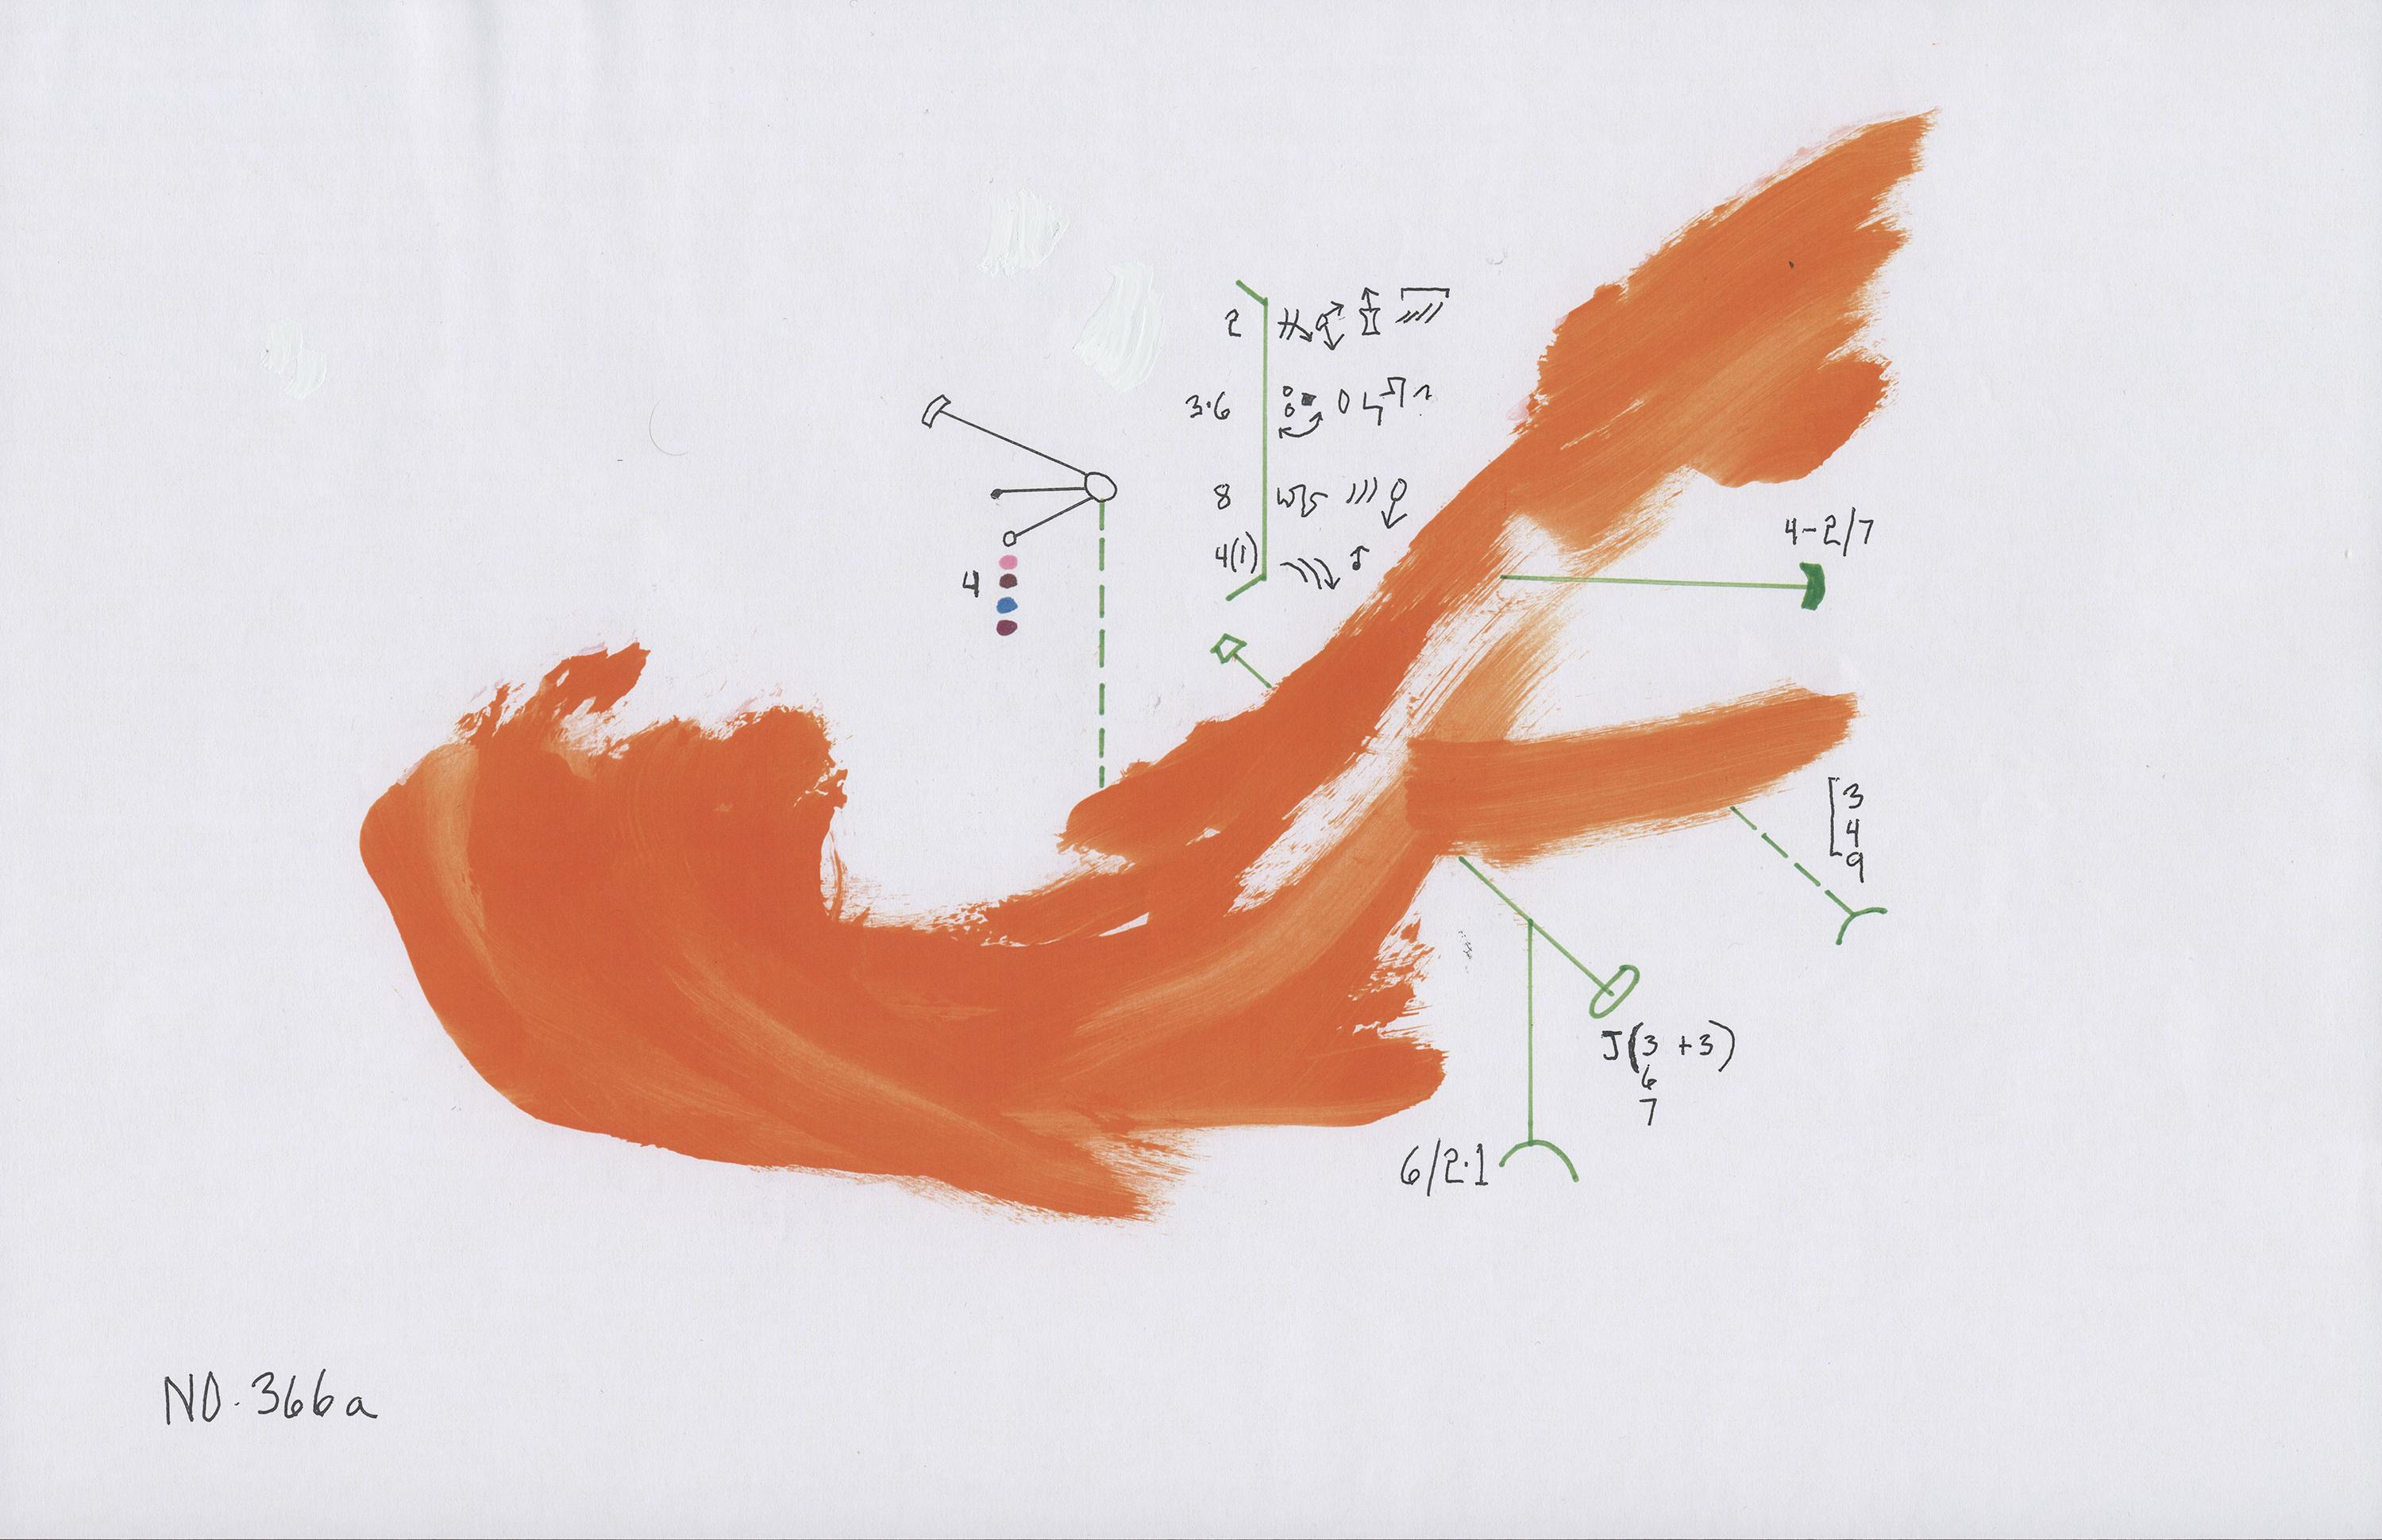 A swooping smear of orange paint overlaps a seeming diagram of green dash lines labeled with black numbers, equations, and geometric symbols